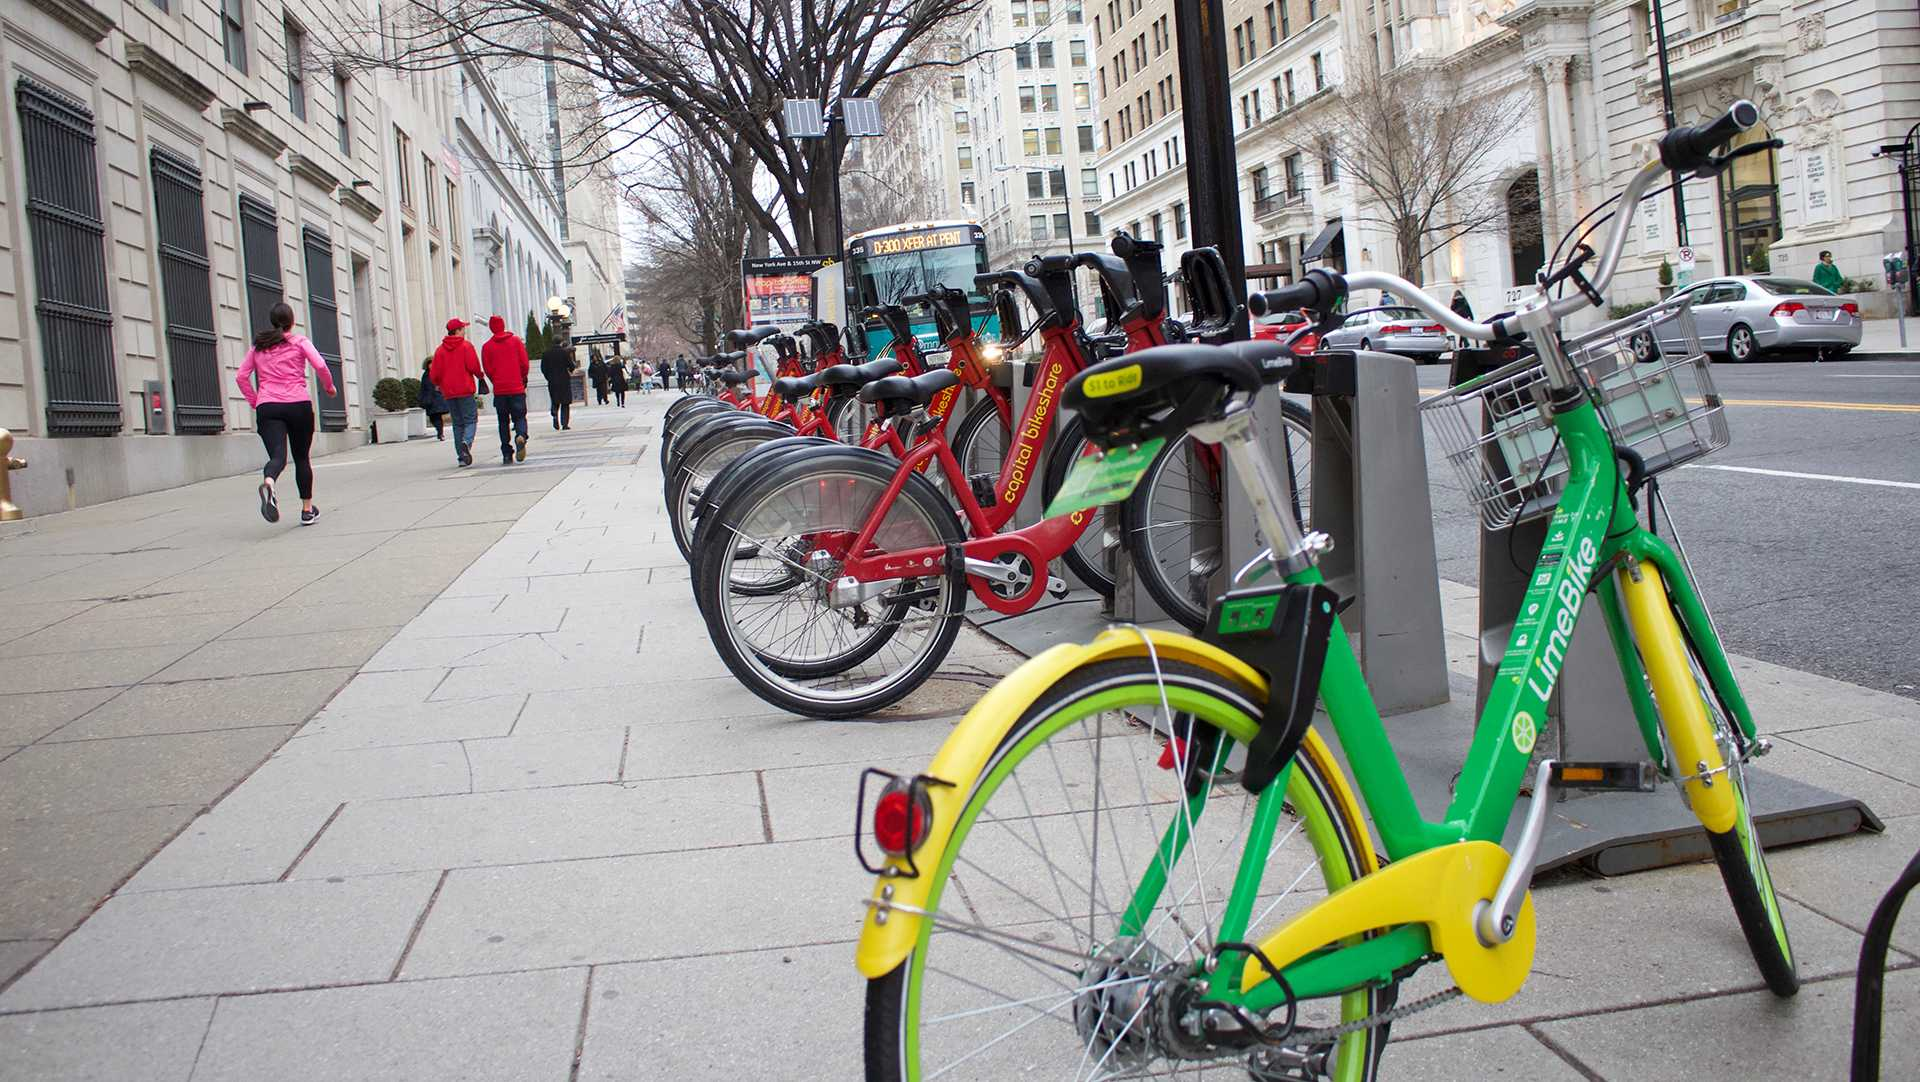 A dockless bike stands before a row of docked bikes in Washington on March 12. Iowa City is considering bringing a dockless bike-share system to town after the technology has had success in many cities nationwide. (Katelyn Weisbrod/The Daily Iowan)